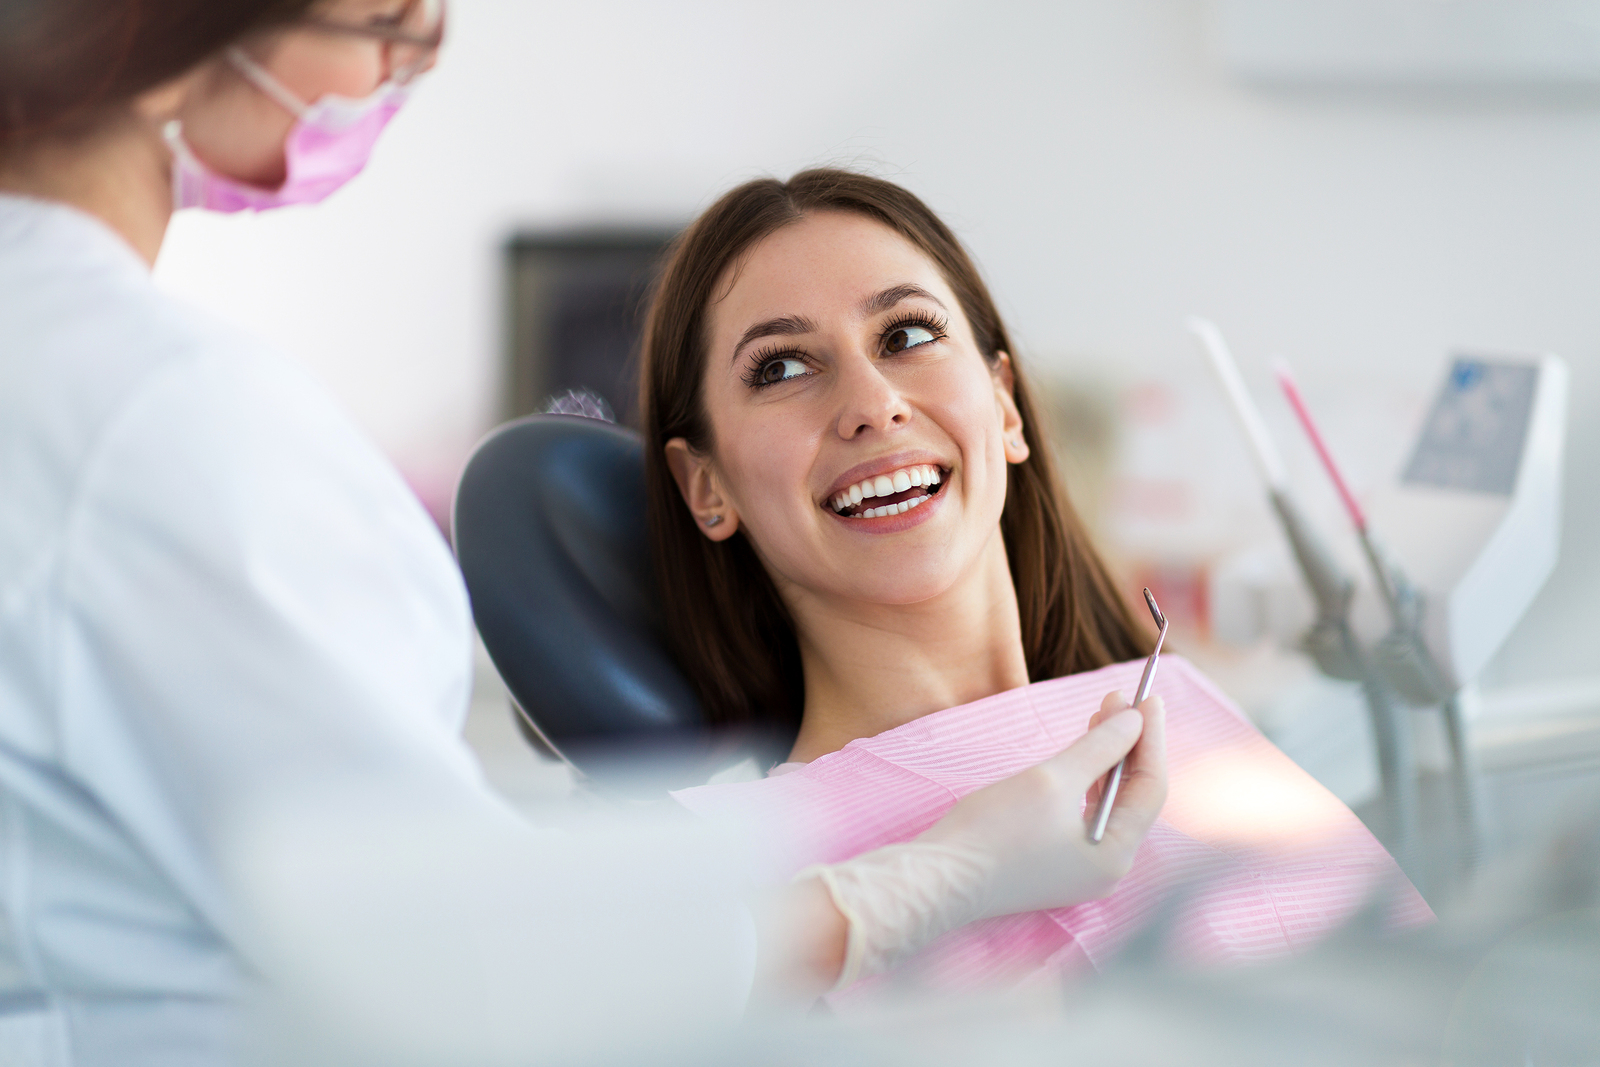 significance of professional dental cleaning